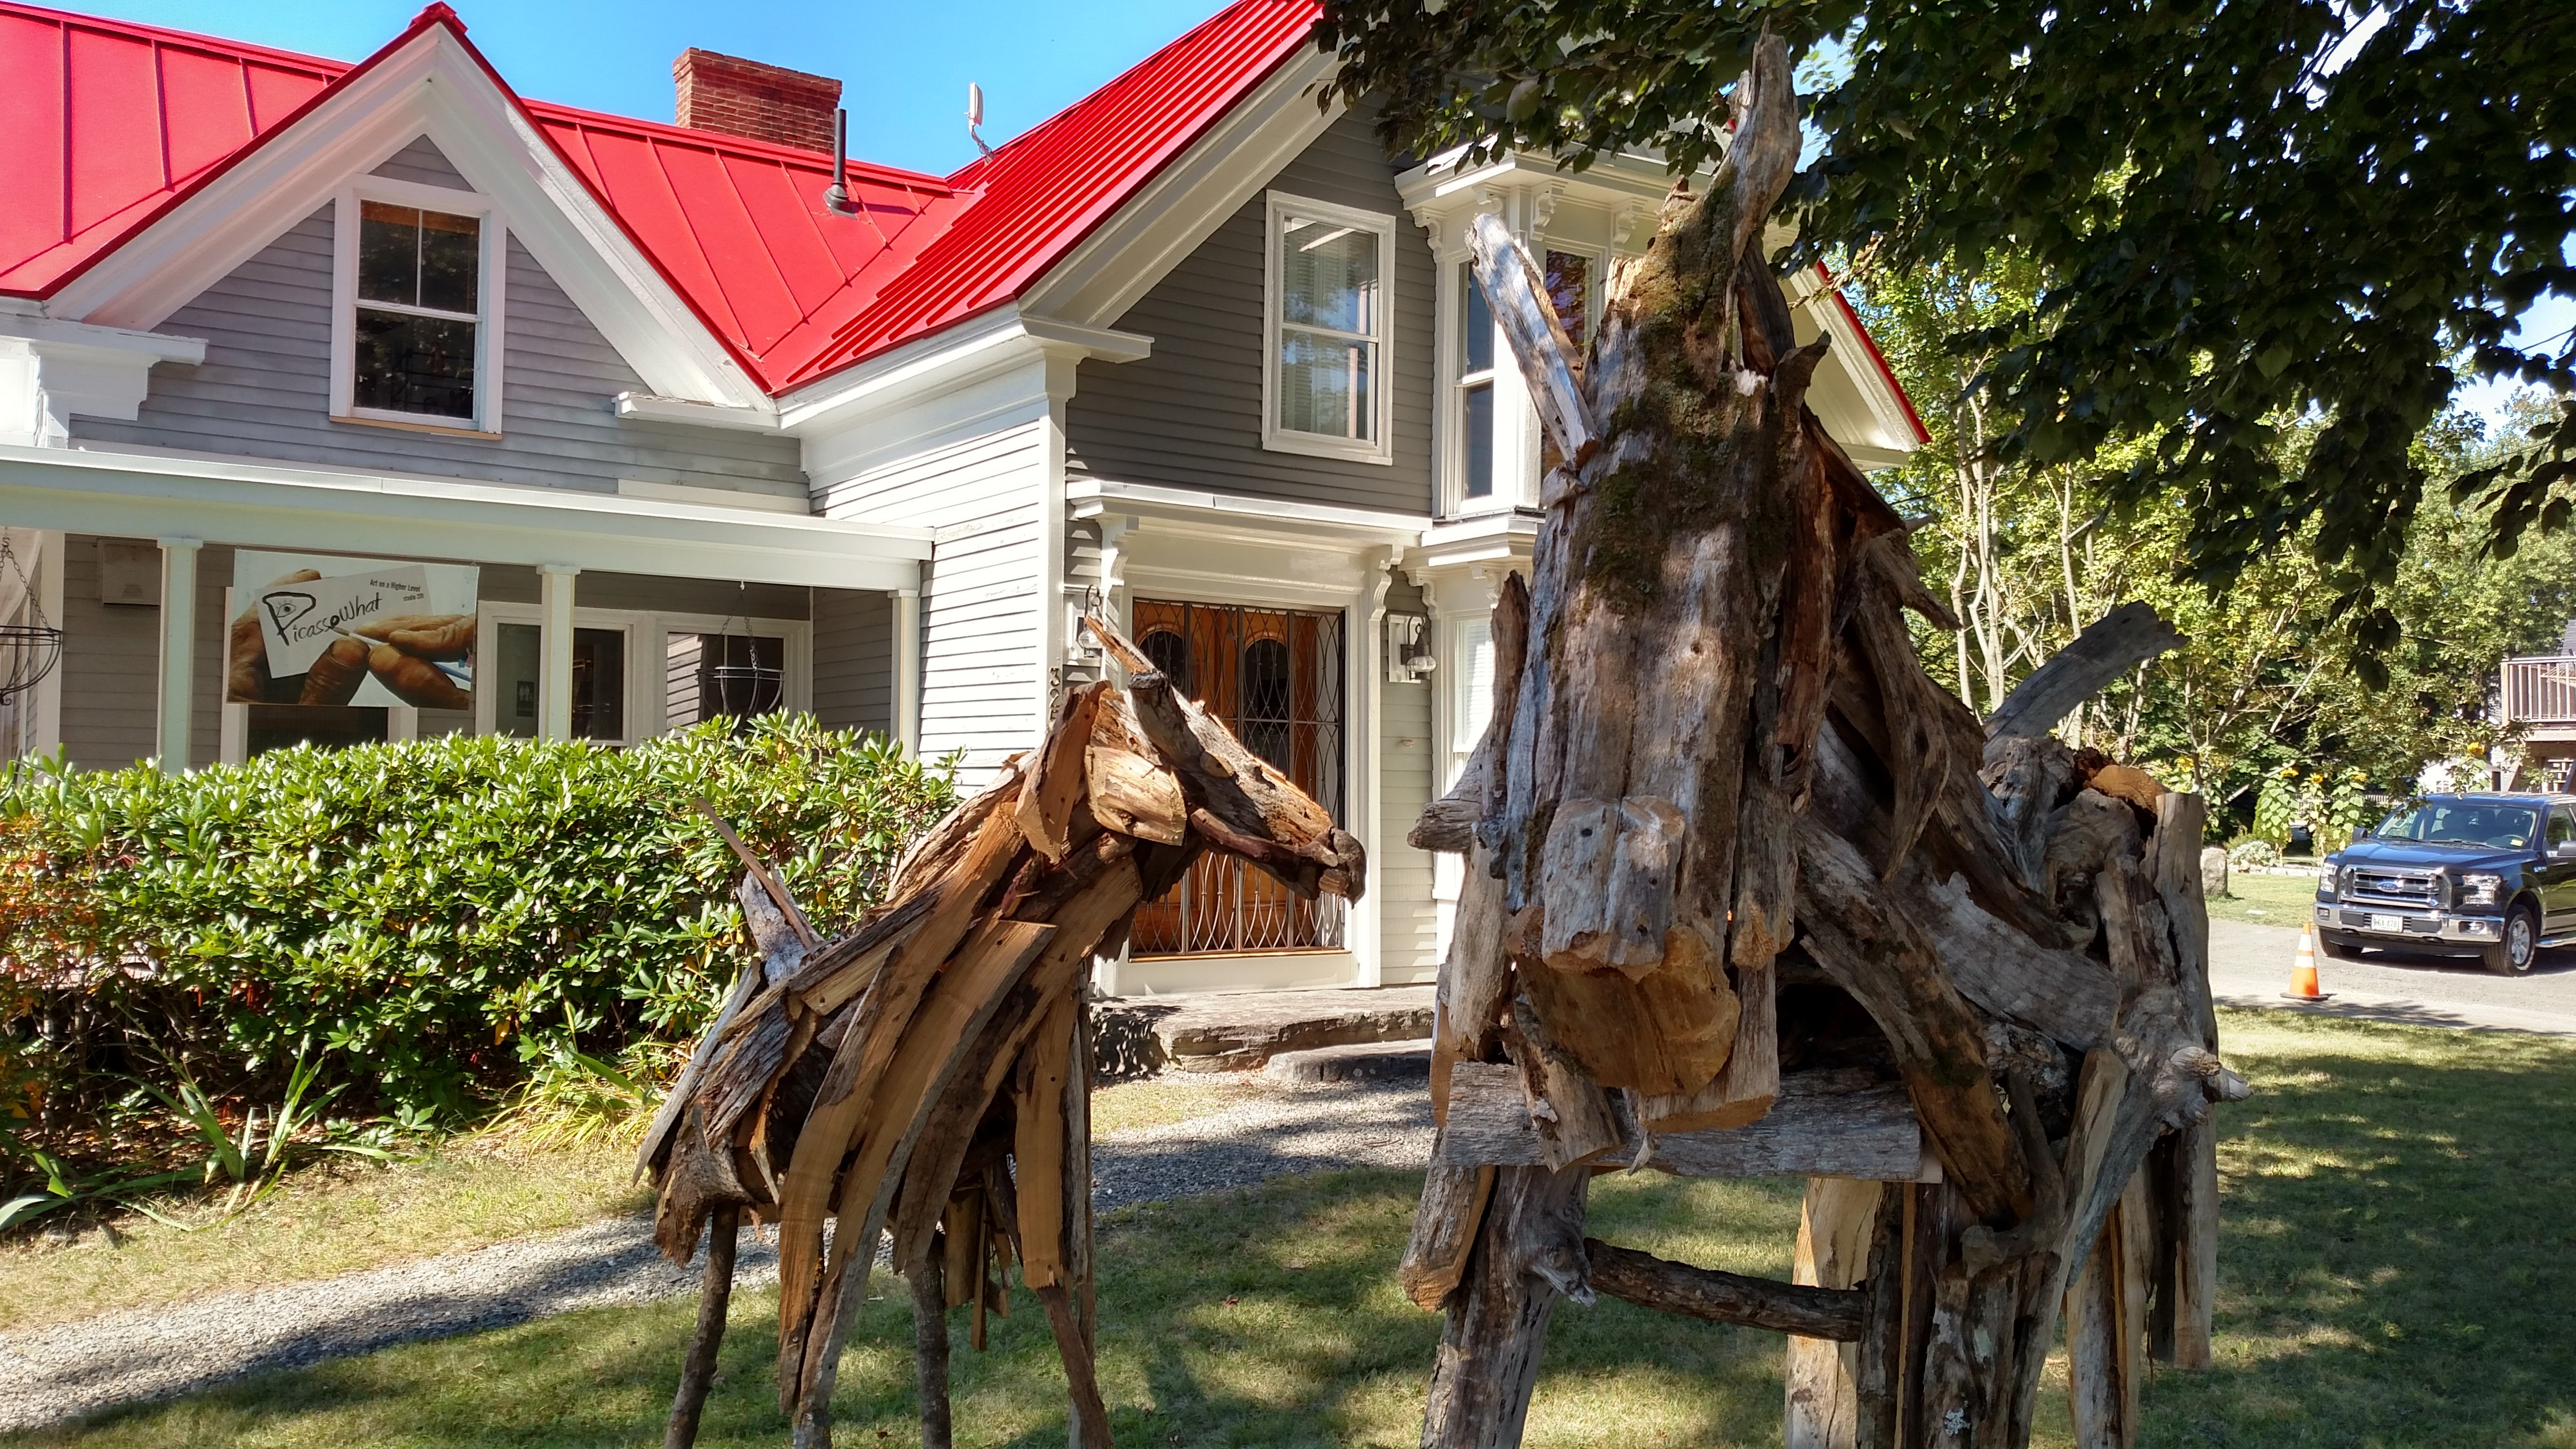 Michael Good Gallery exterior photograph. Historic farmhouse with red roof, and two wood animal sculptures by Maine artist Richard Allen on front lawn.